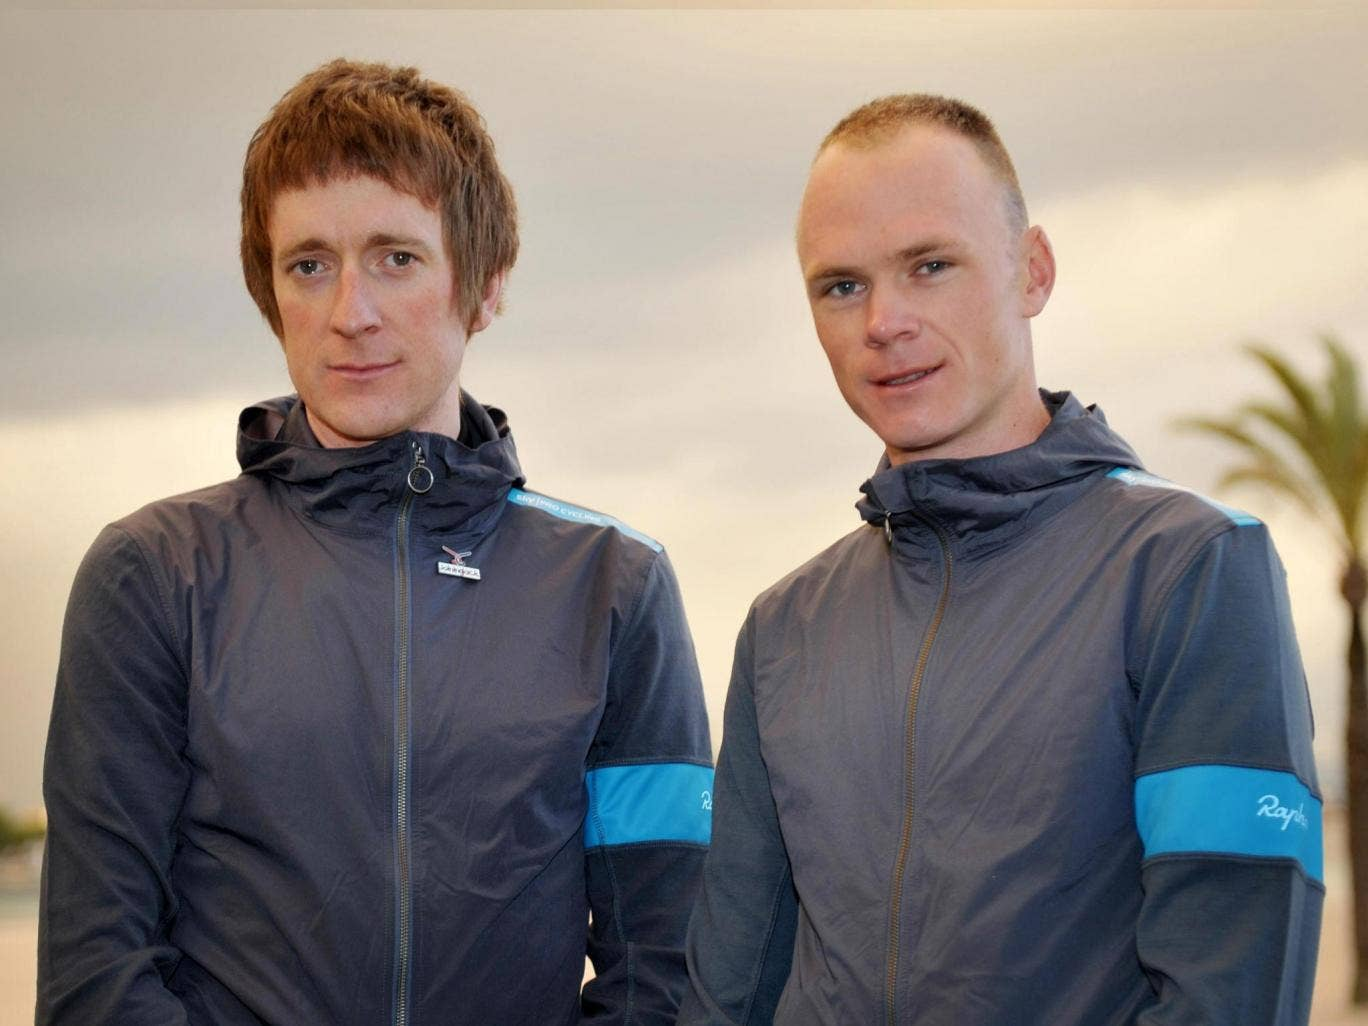 Froome supported Wiggins in his win, but appeared to disobey orders when he pulled away on stage 11